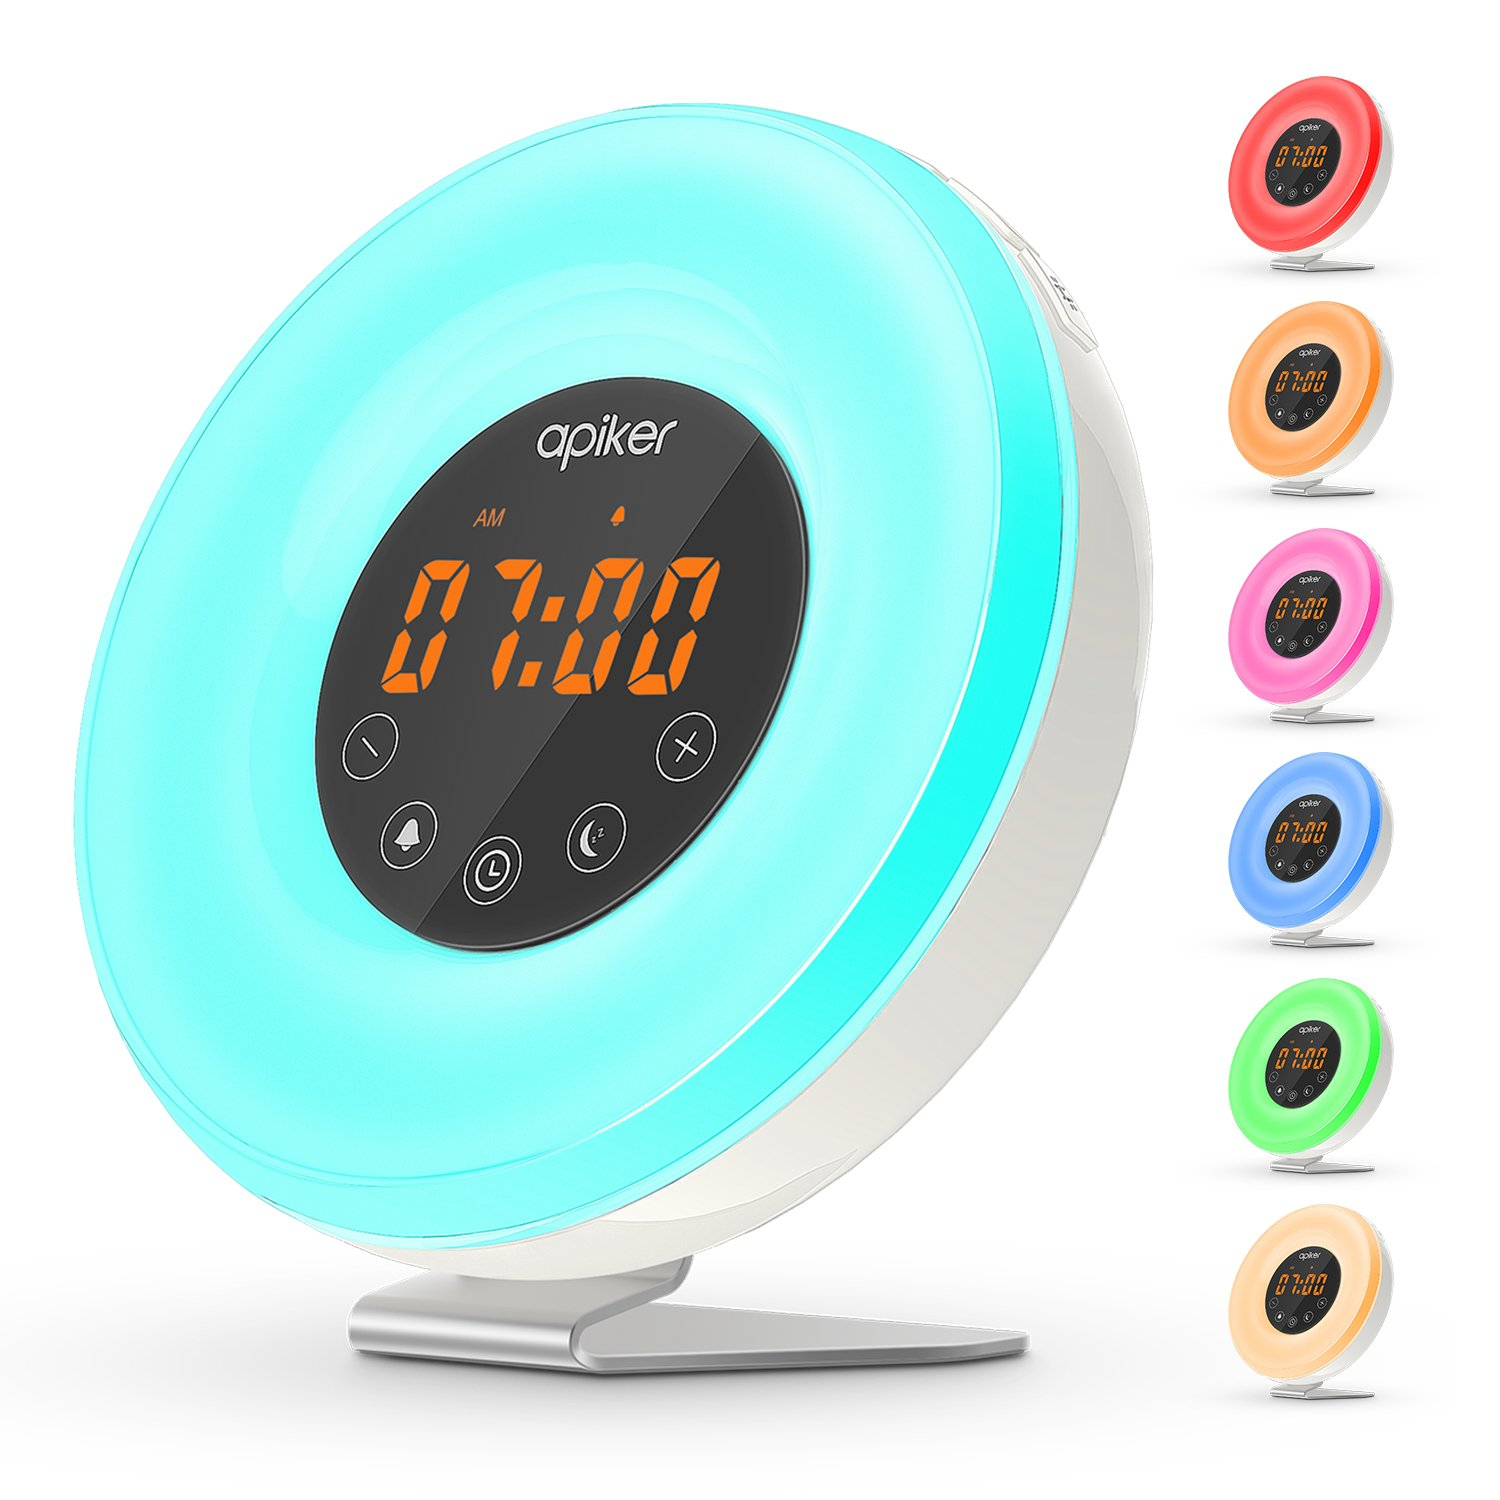 philips wake up light manual